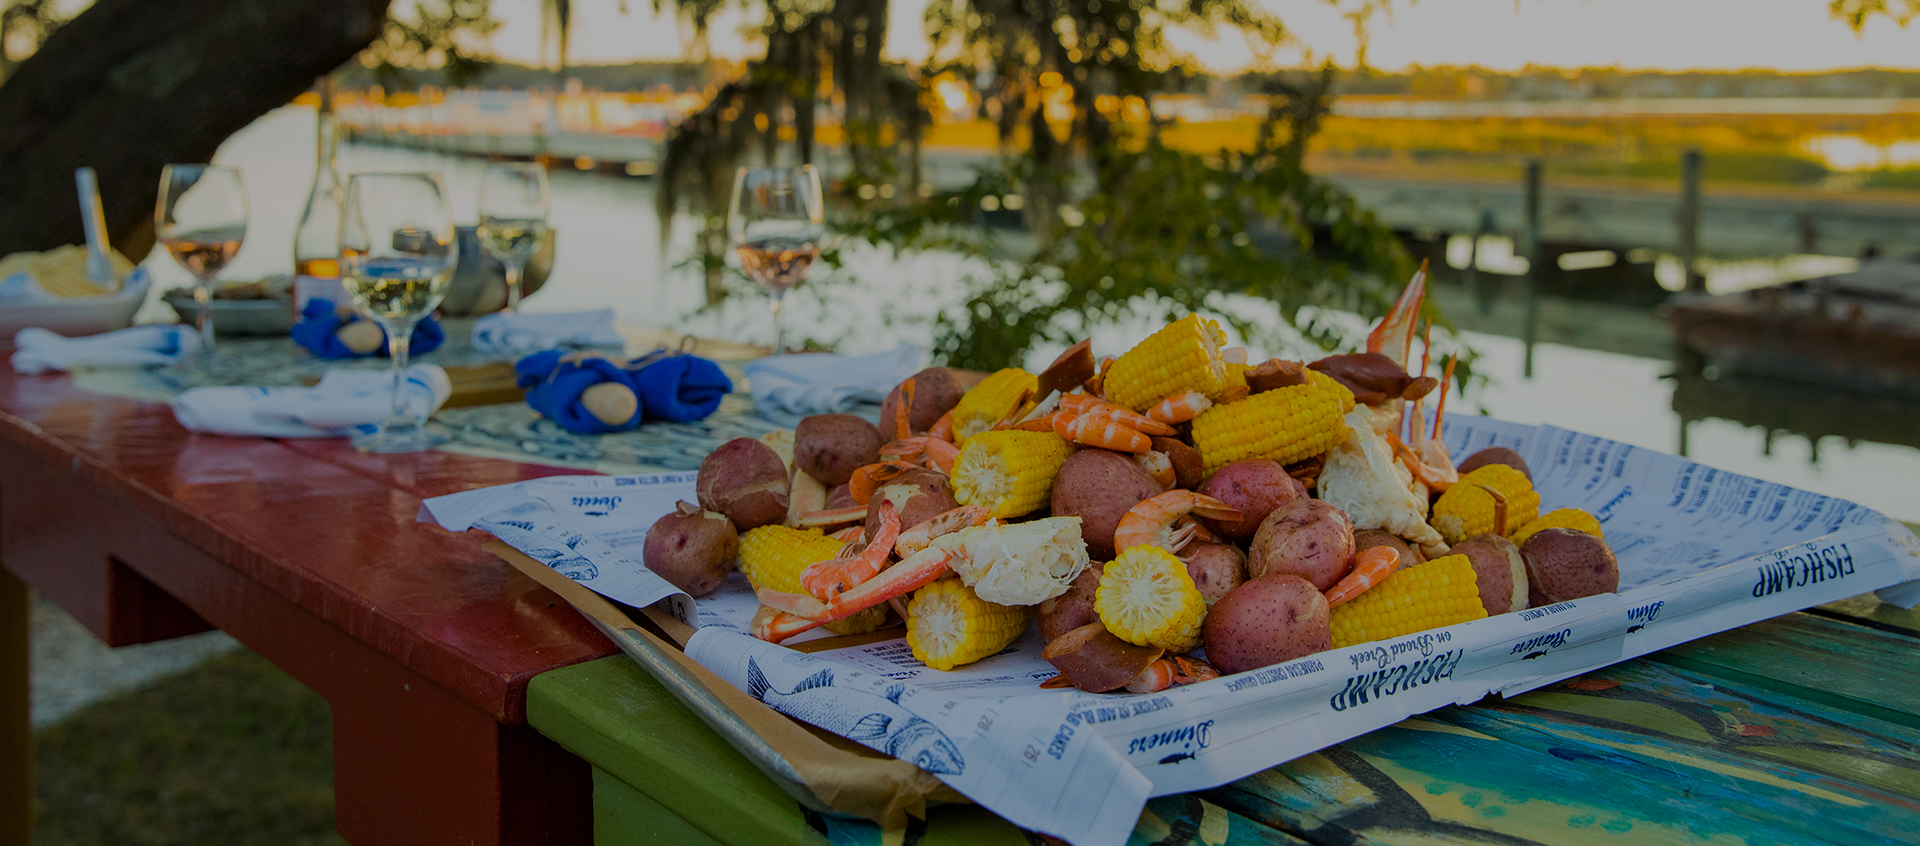 picnic table full of potatoes, corn, and seafood